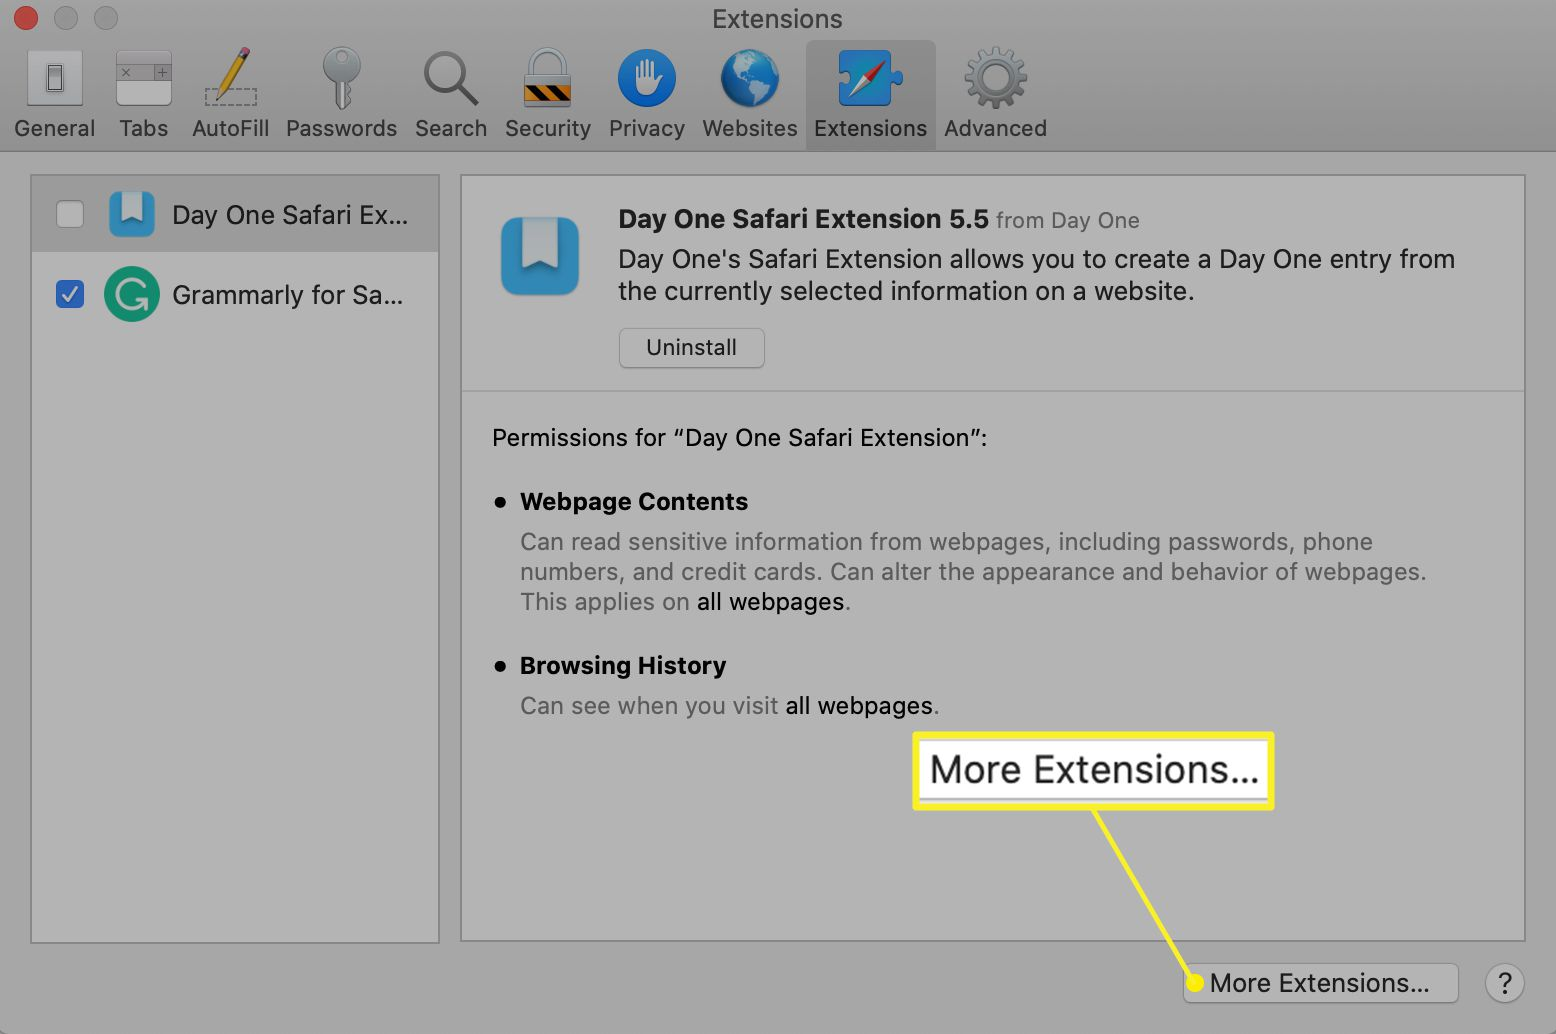 Extensions preferences with More Extensions highlighted